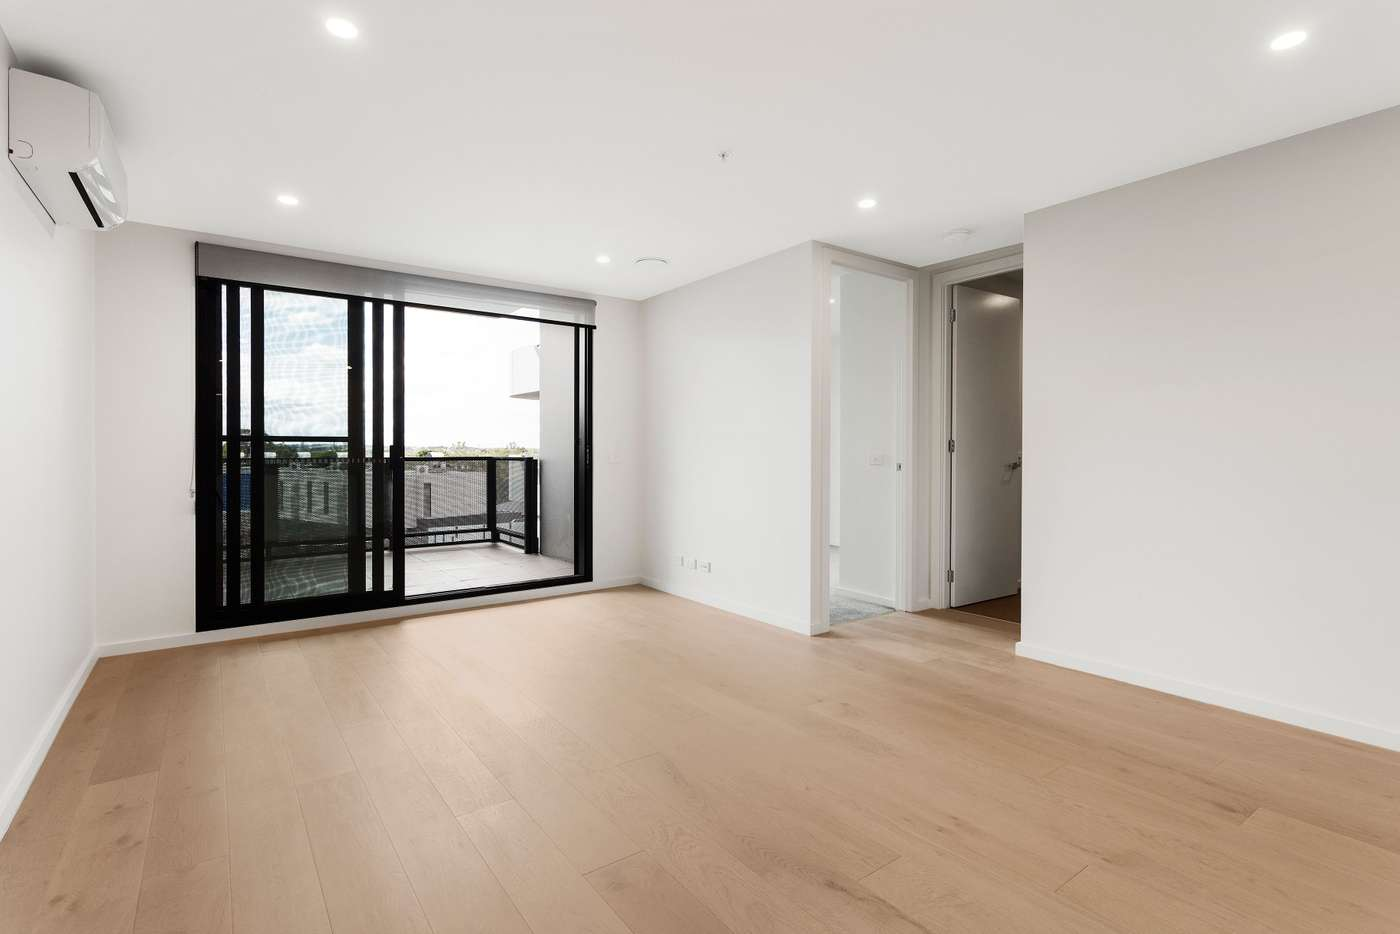 Main view of Homely apartment listing, 302/16 Woorayl Street, Carnegie VIC 3163